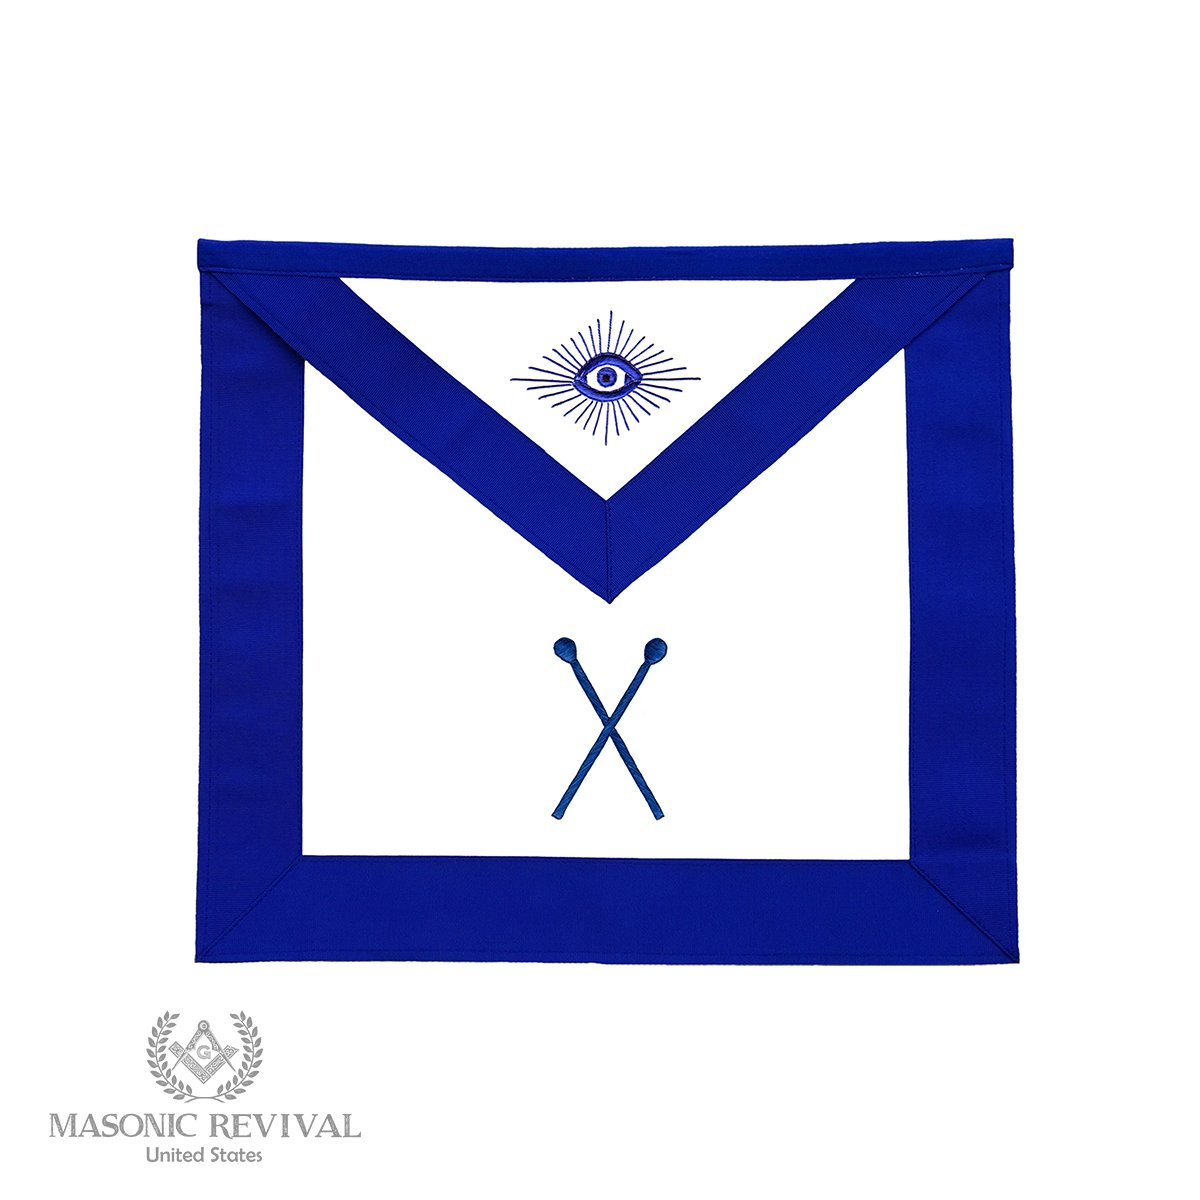 Masonic Revival Master of Ceremonies Officer Apron by 15MA167